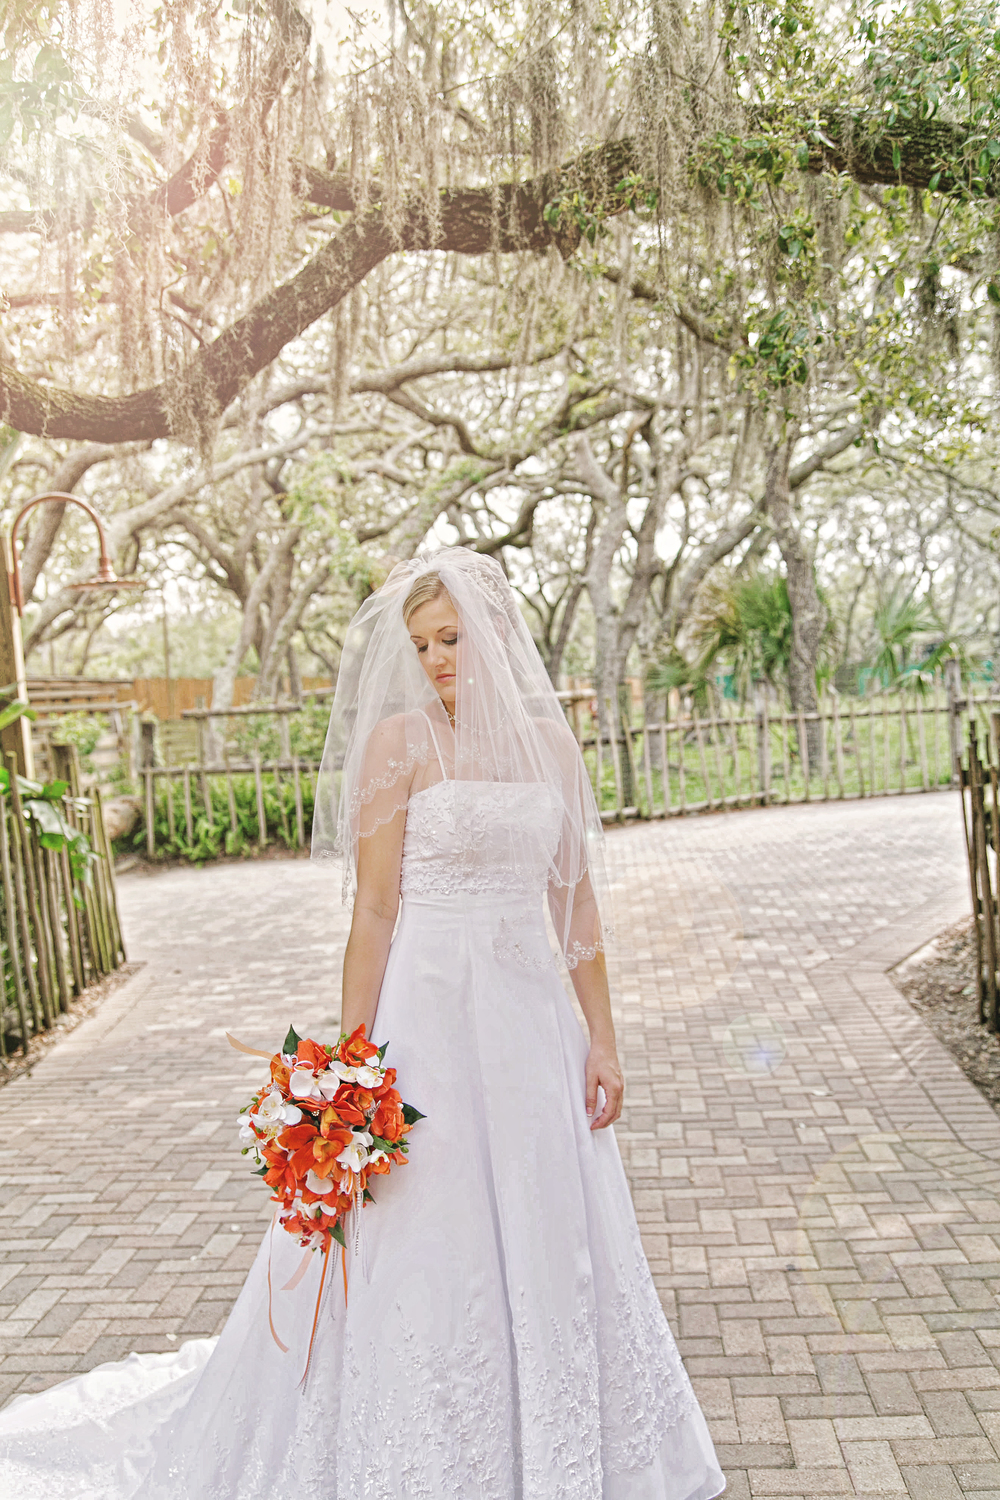 Tampa Lowry Zoo Wedding Photographer-82.jpg